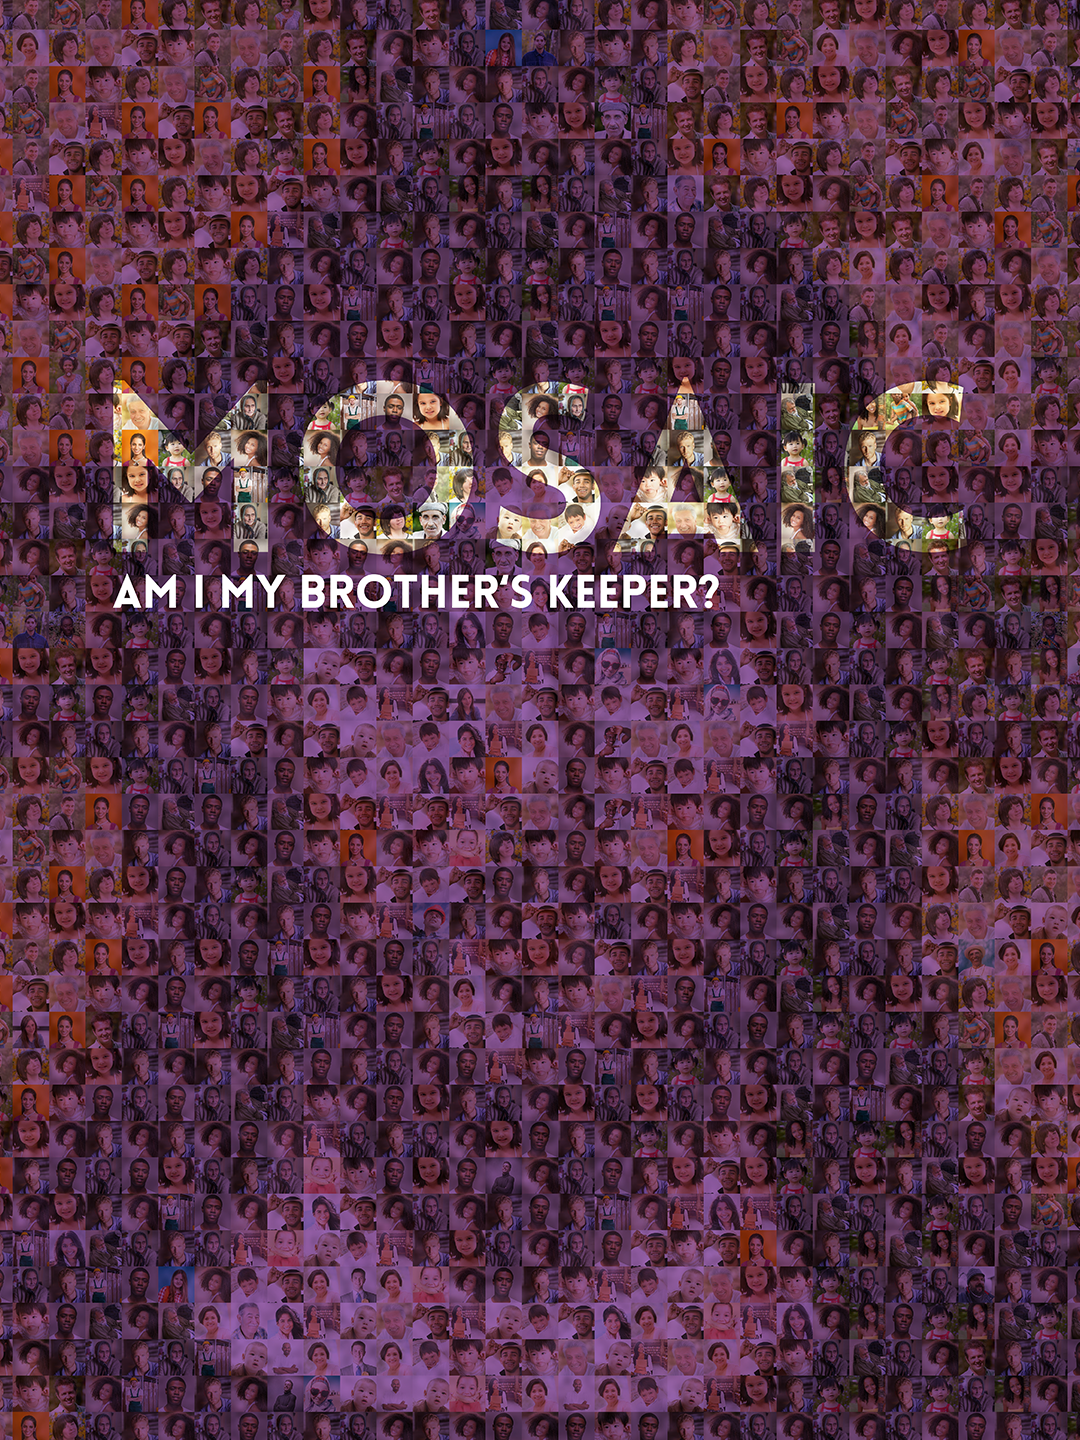 Mosaic: Am I My Brother's Keeper?